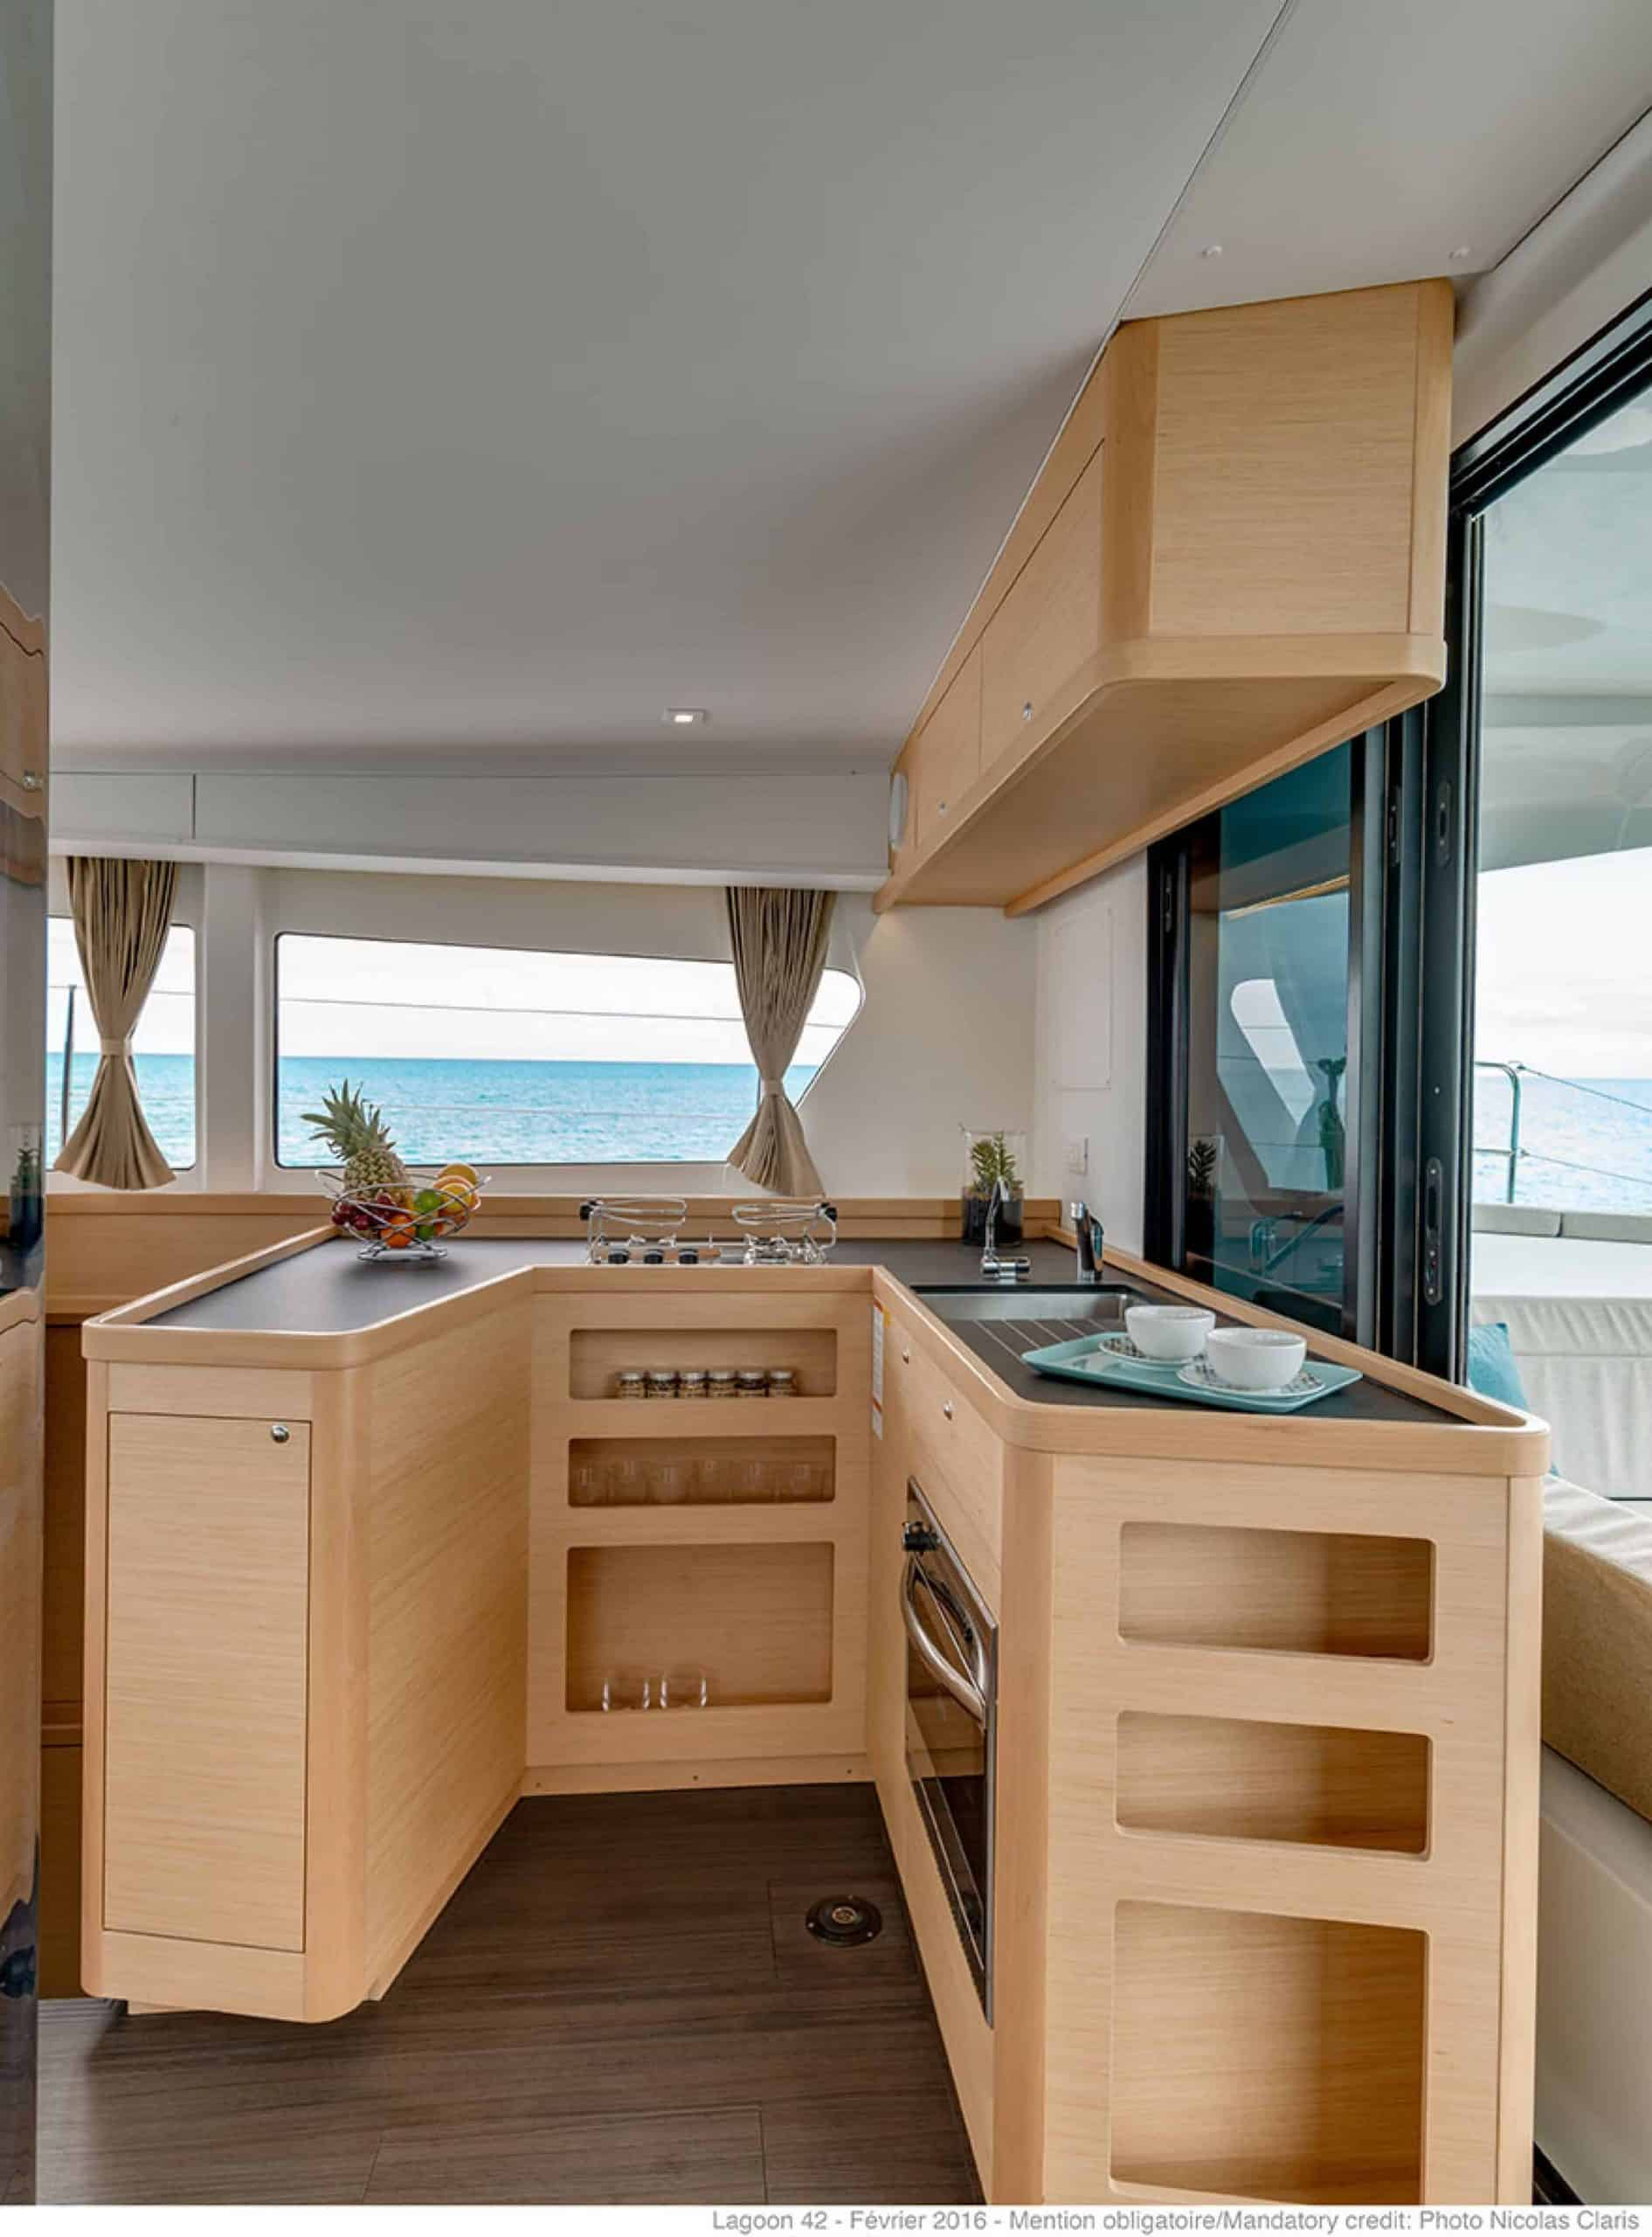 Amazing and simplistic galley of the lagoon 42